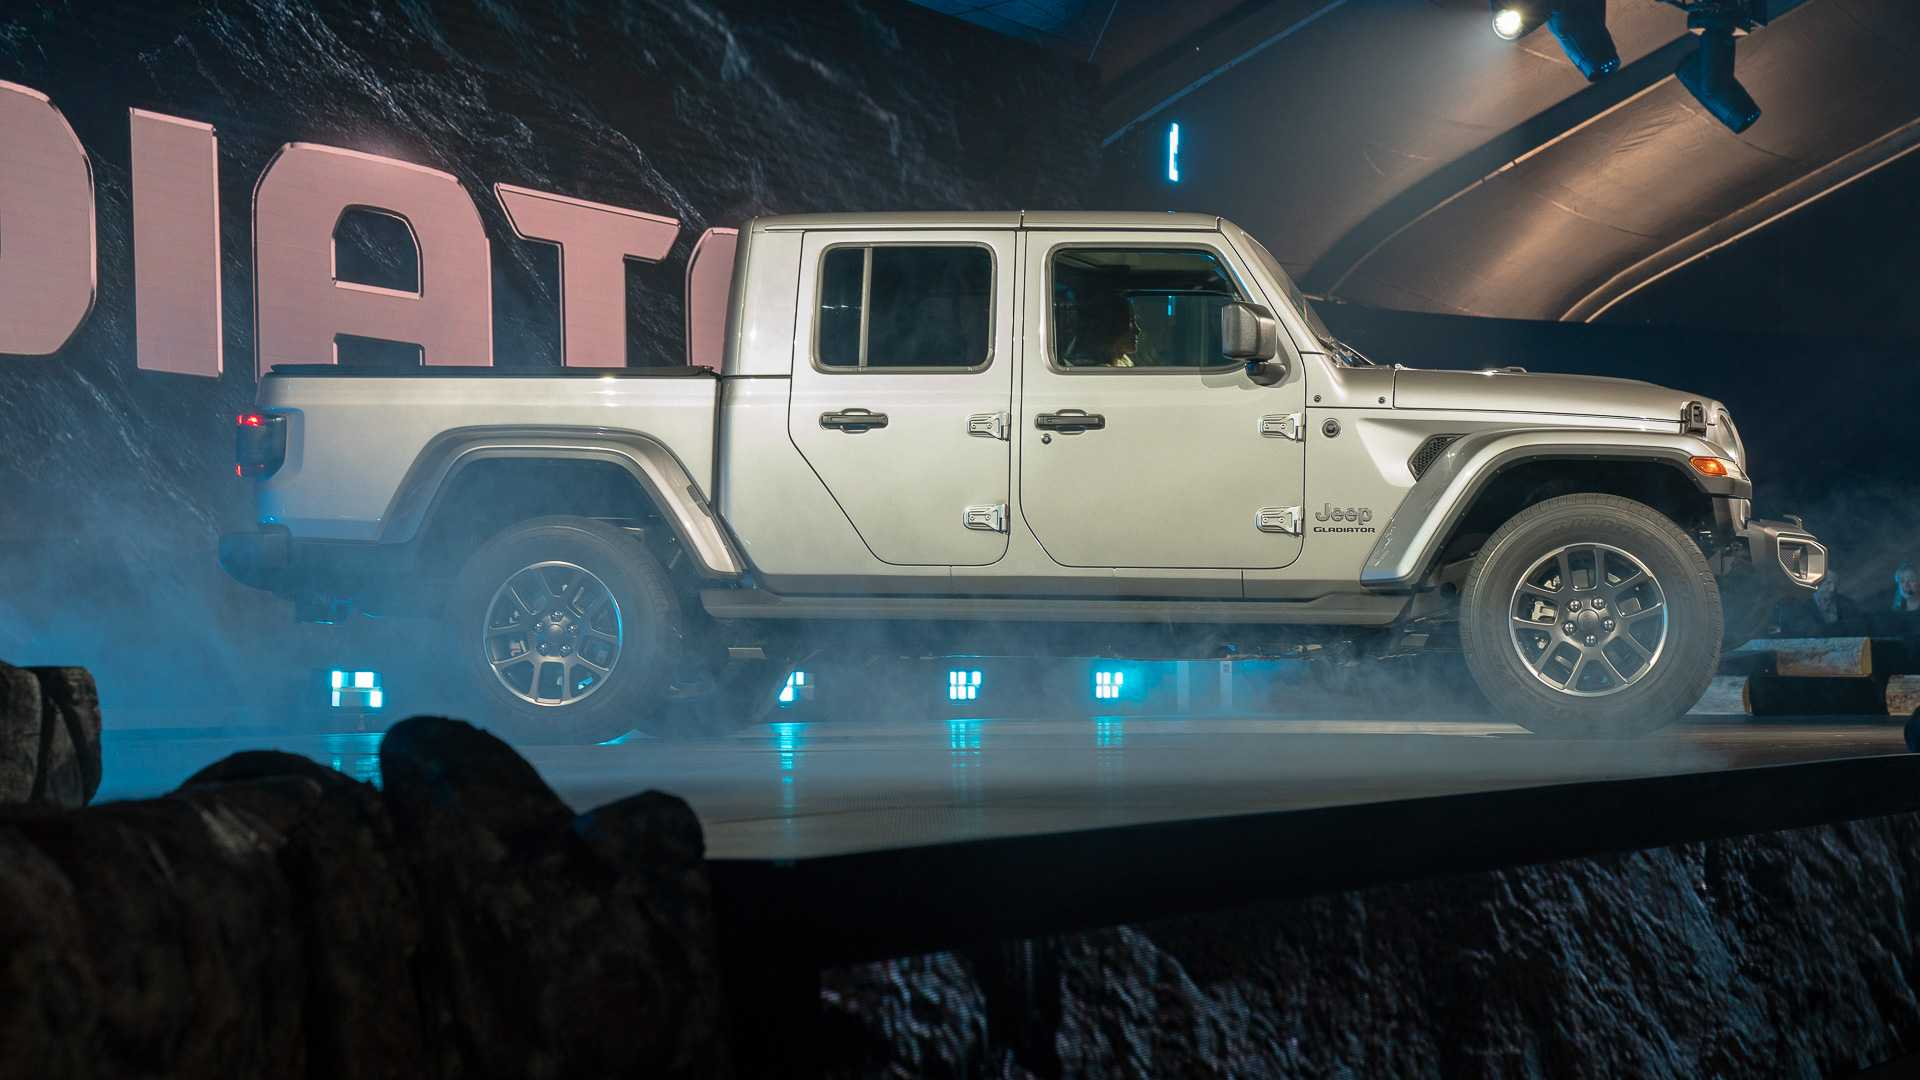 89 A 2020 Jeep Gladiator Aftermarket Parts Release Date And Concept